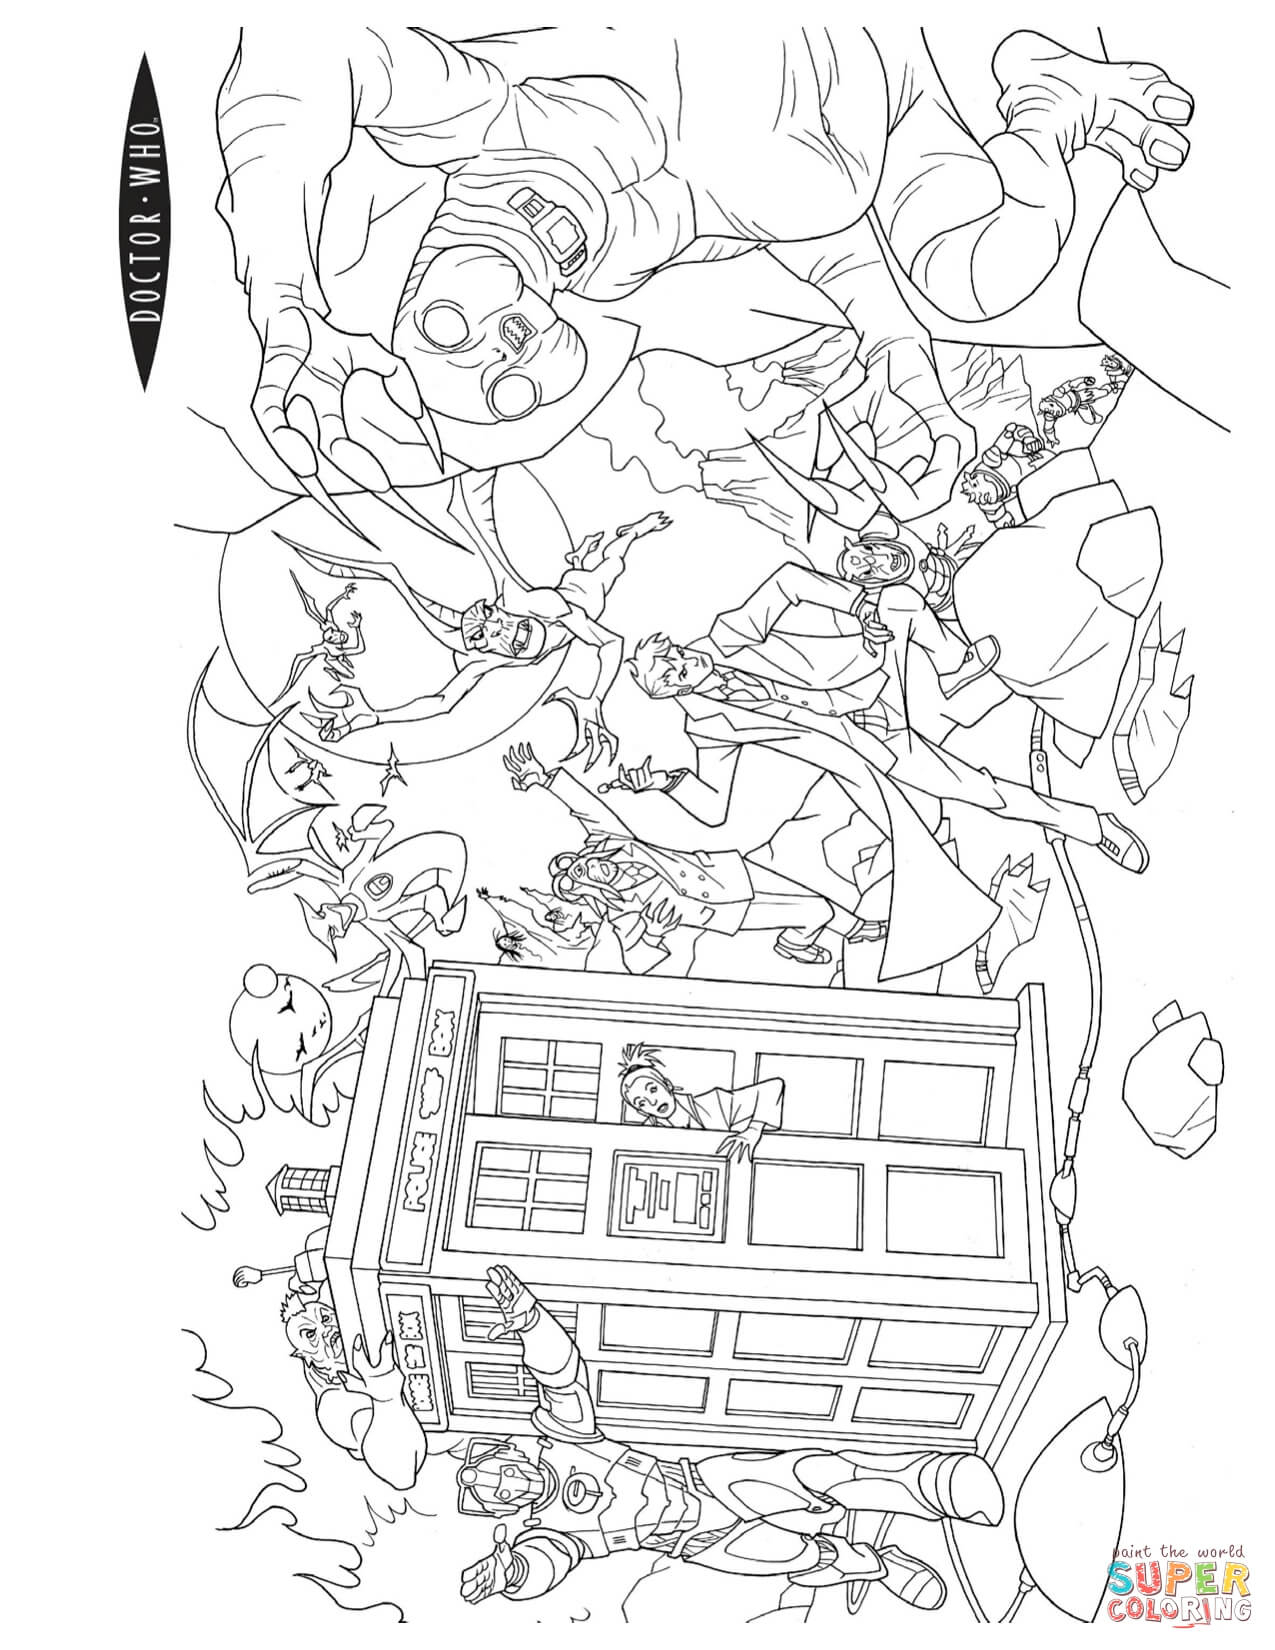 Doctor Who Coloring Page Doctor Who Coloring Pages Free Coloring Pages